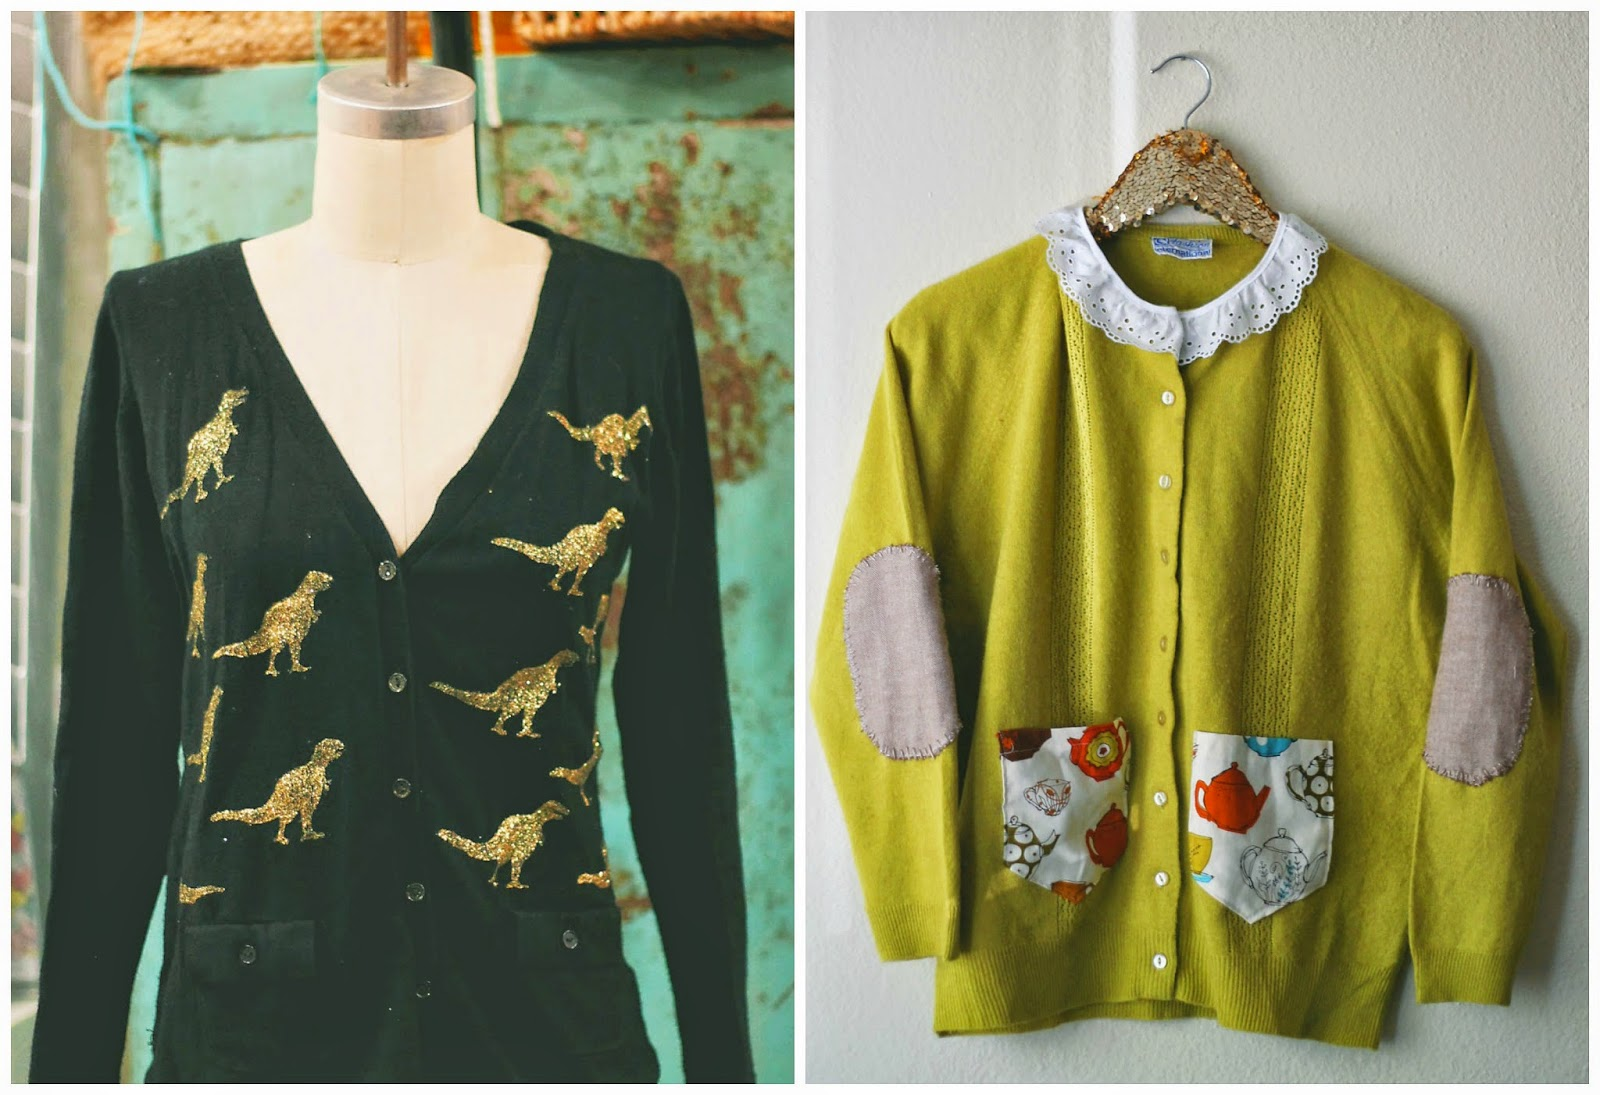 Handmade Heatherly repurposed cardigans via The Sunshine Grove